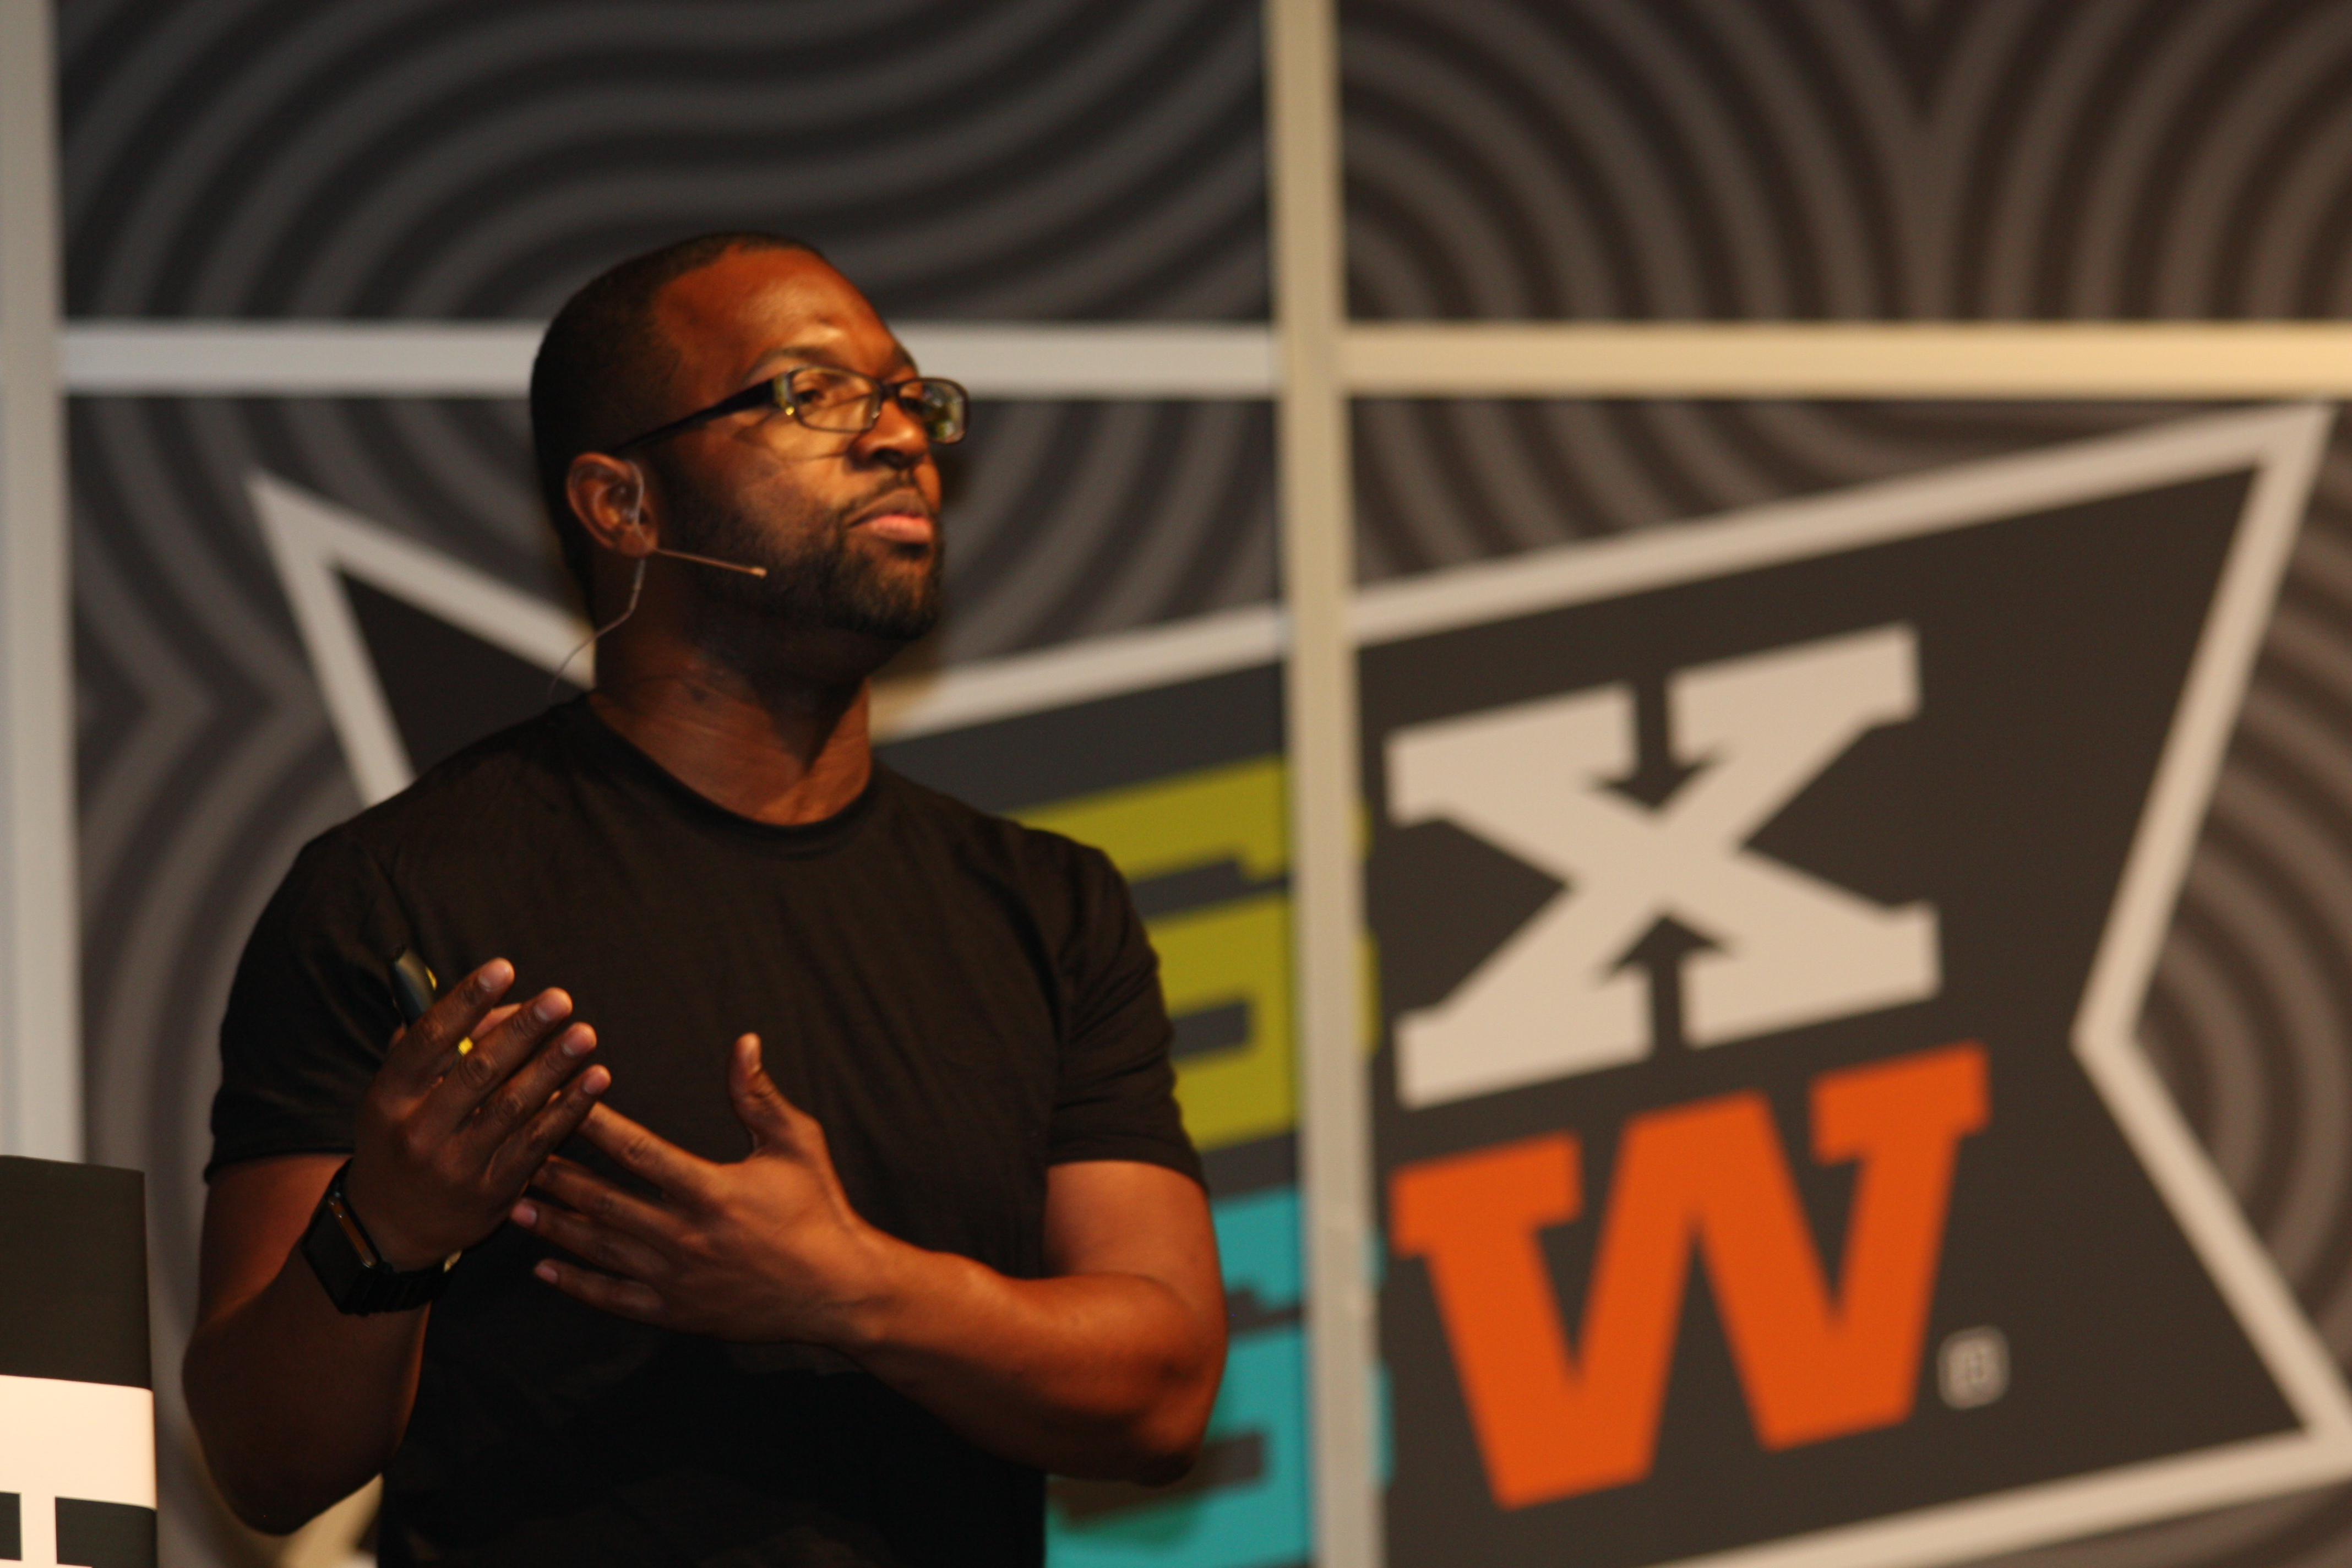 How to Be Black author Baratunde Thurston delivers the keynote address at SXSW (Image: Mary Pryor)